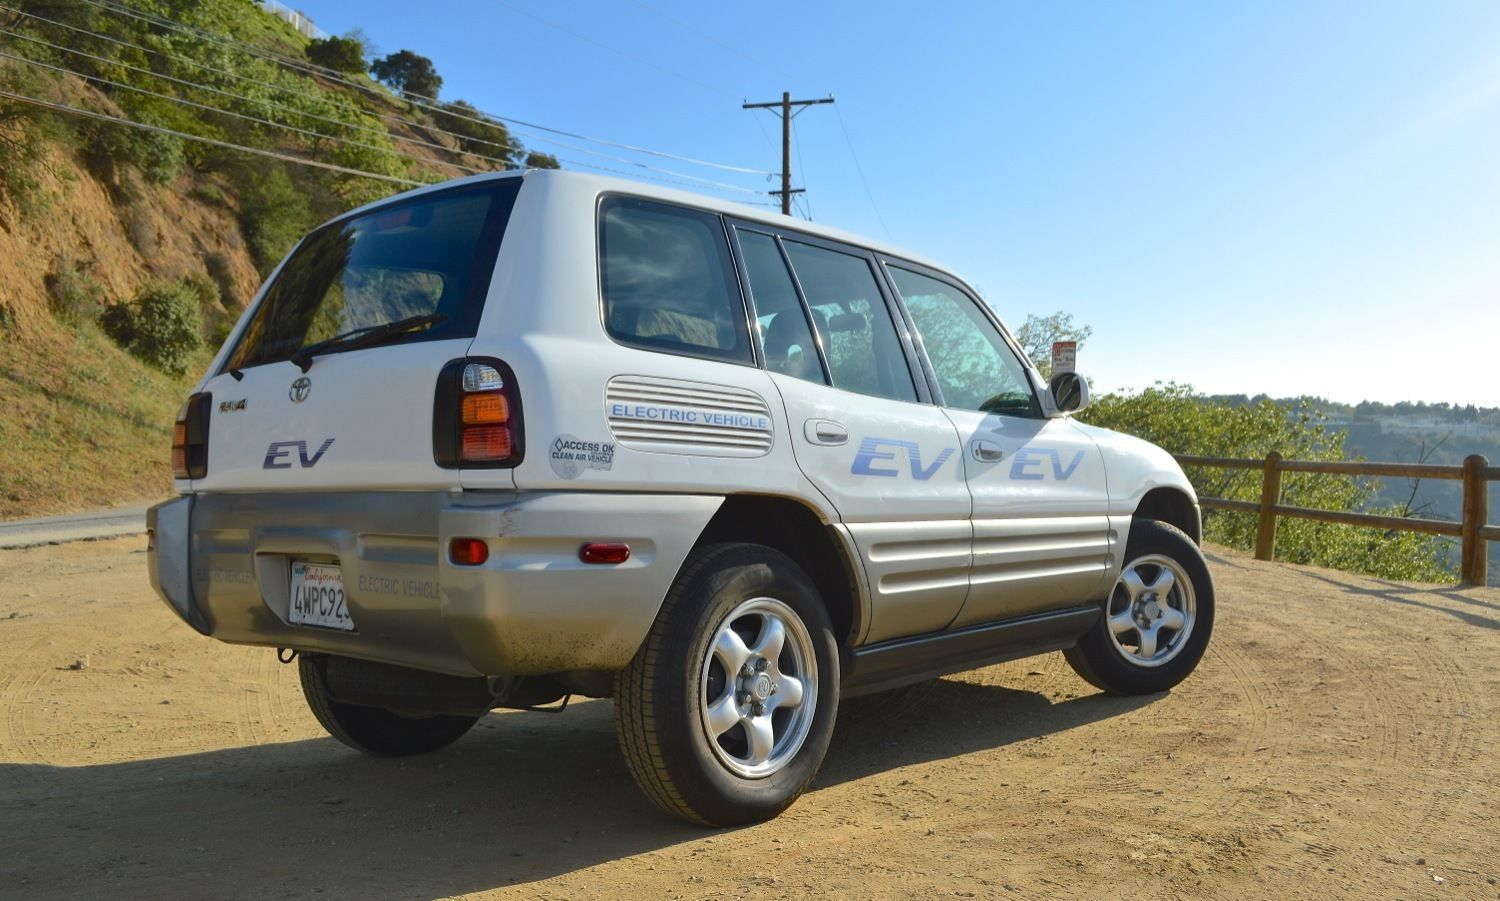 ed begley 39 s toyota rav4 ev is up for sale autoevolution. Black Bedroom Furniture Sets. Home Design Ideas